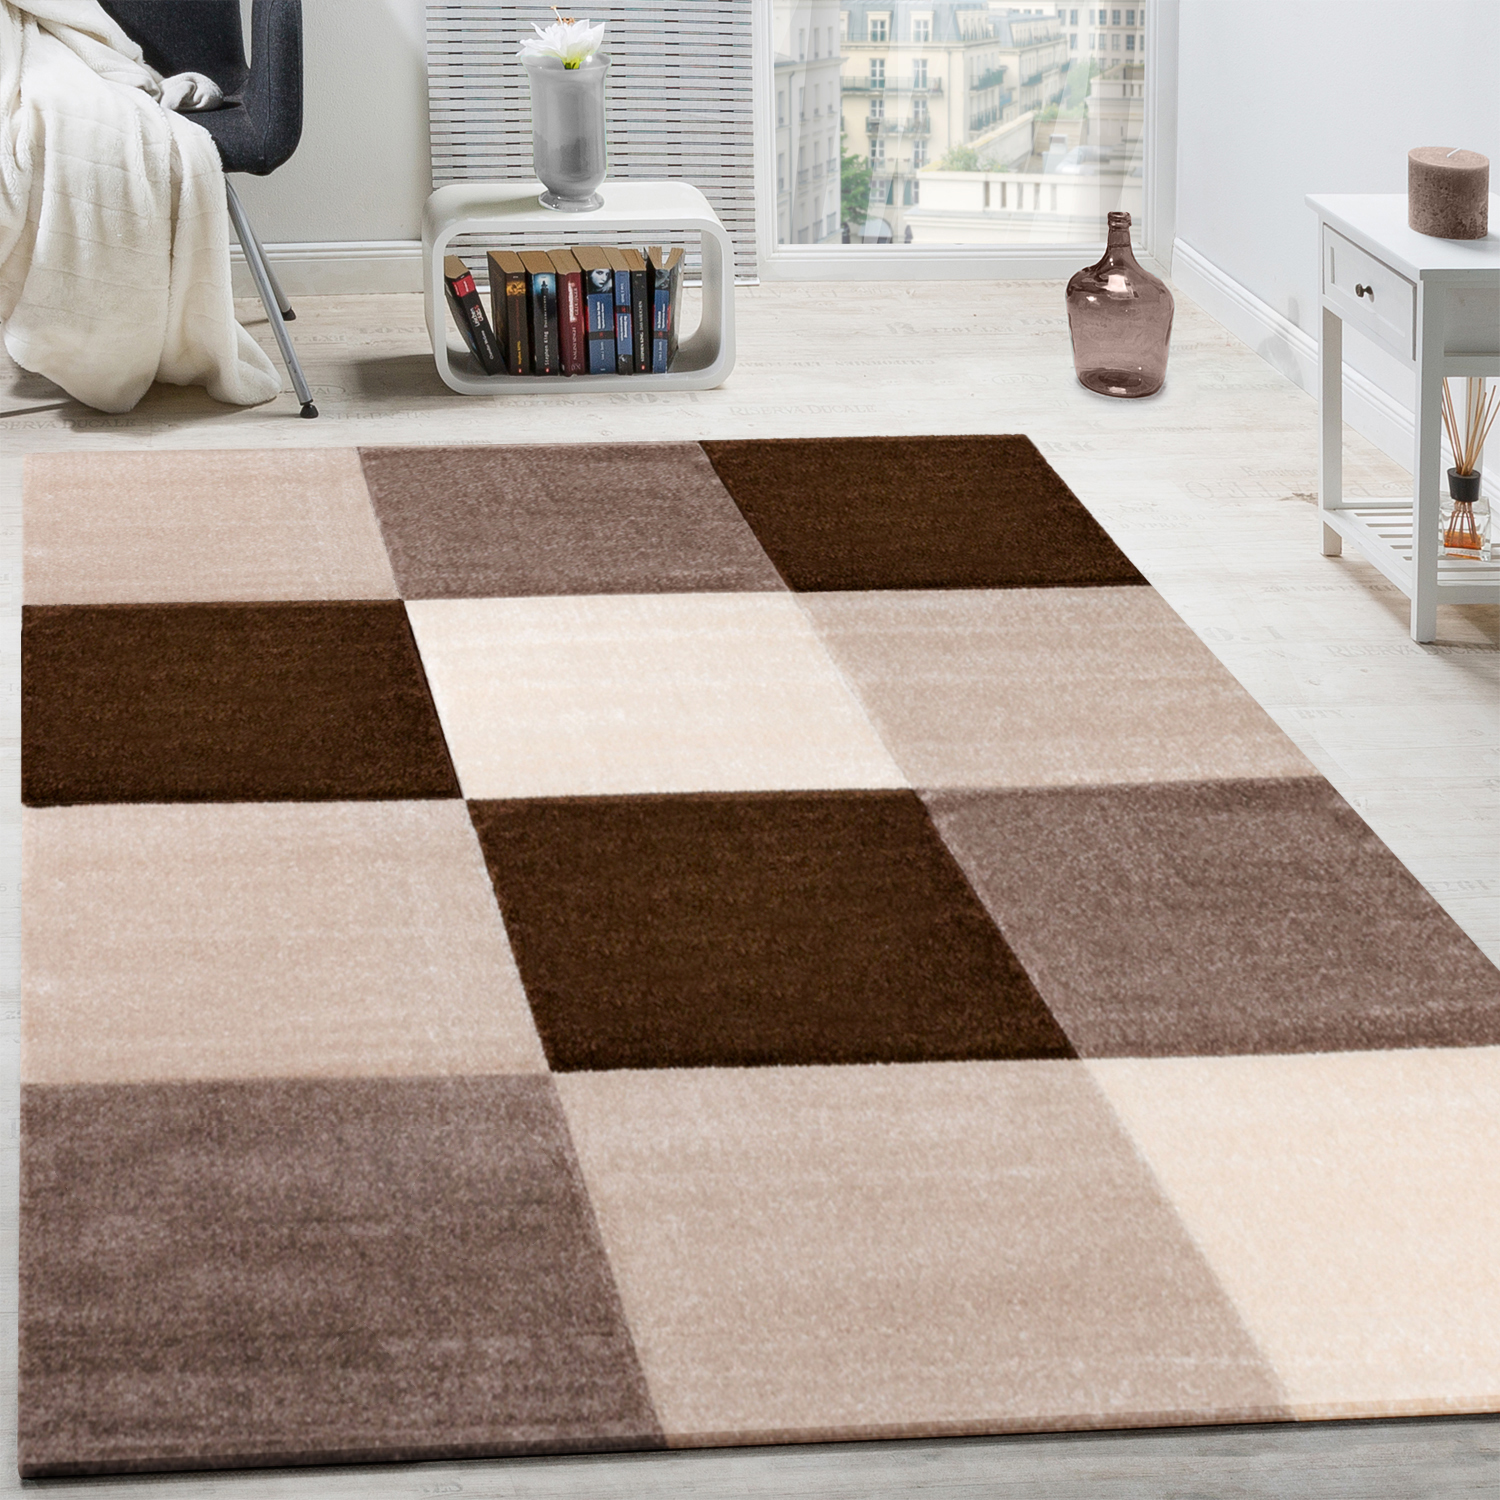 tapis moderne salon poils ras carreaux design brun beige cr me soldes stock restant. Black Bedroom Furniture Sets. Home Design Ideas